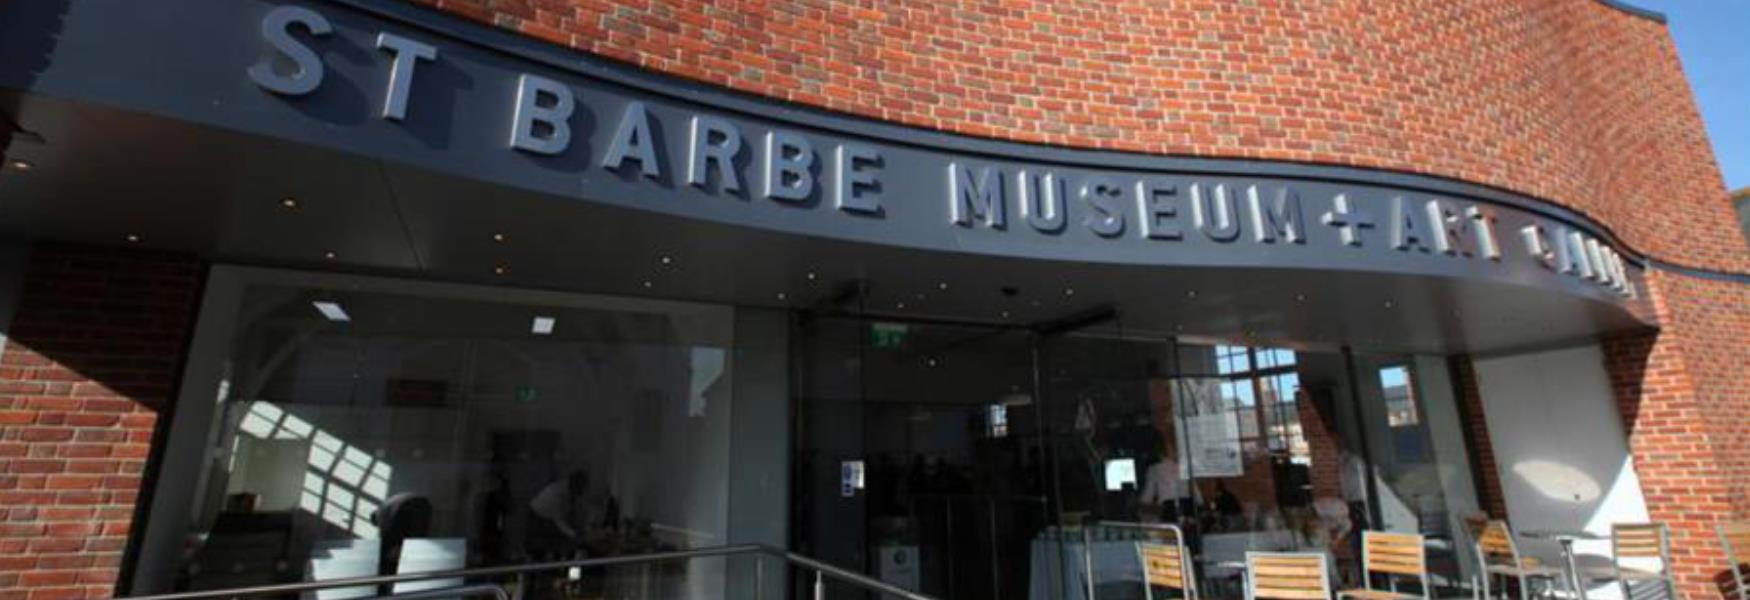 st barbe museum and art gallery in lymington in the new forest